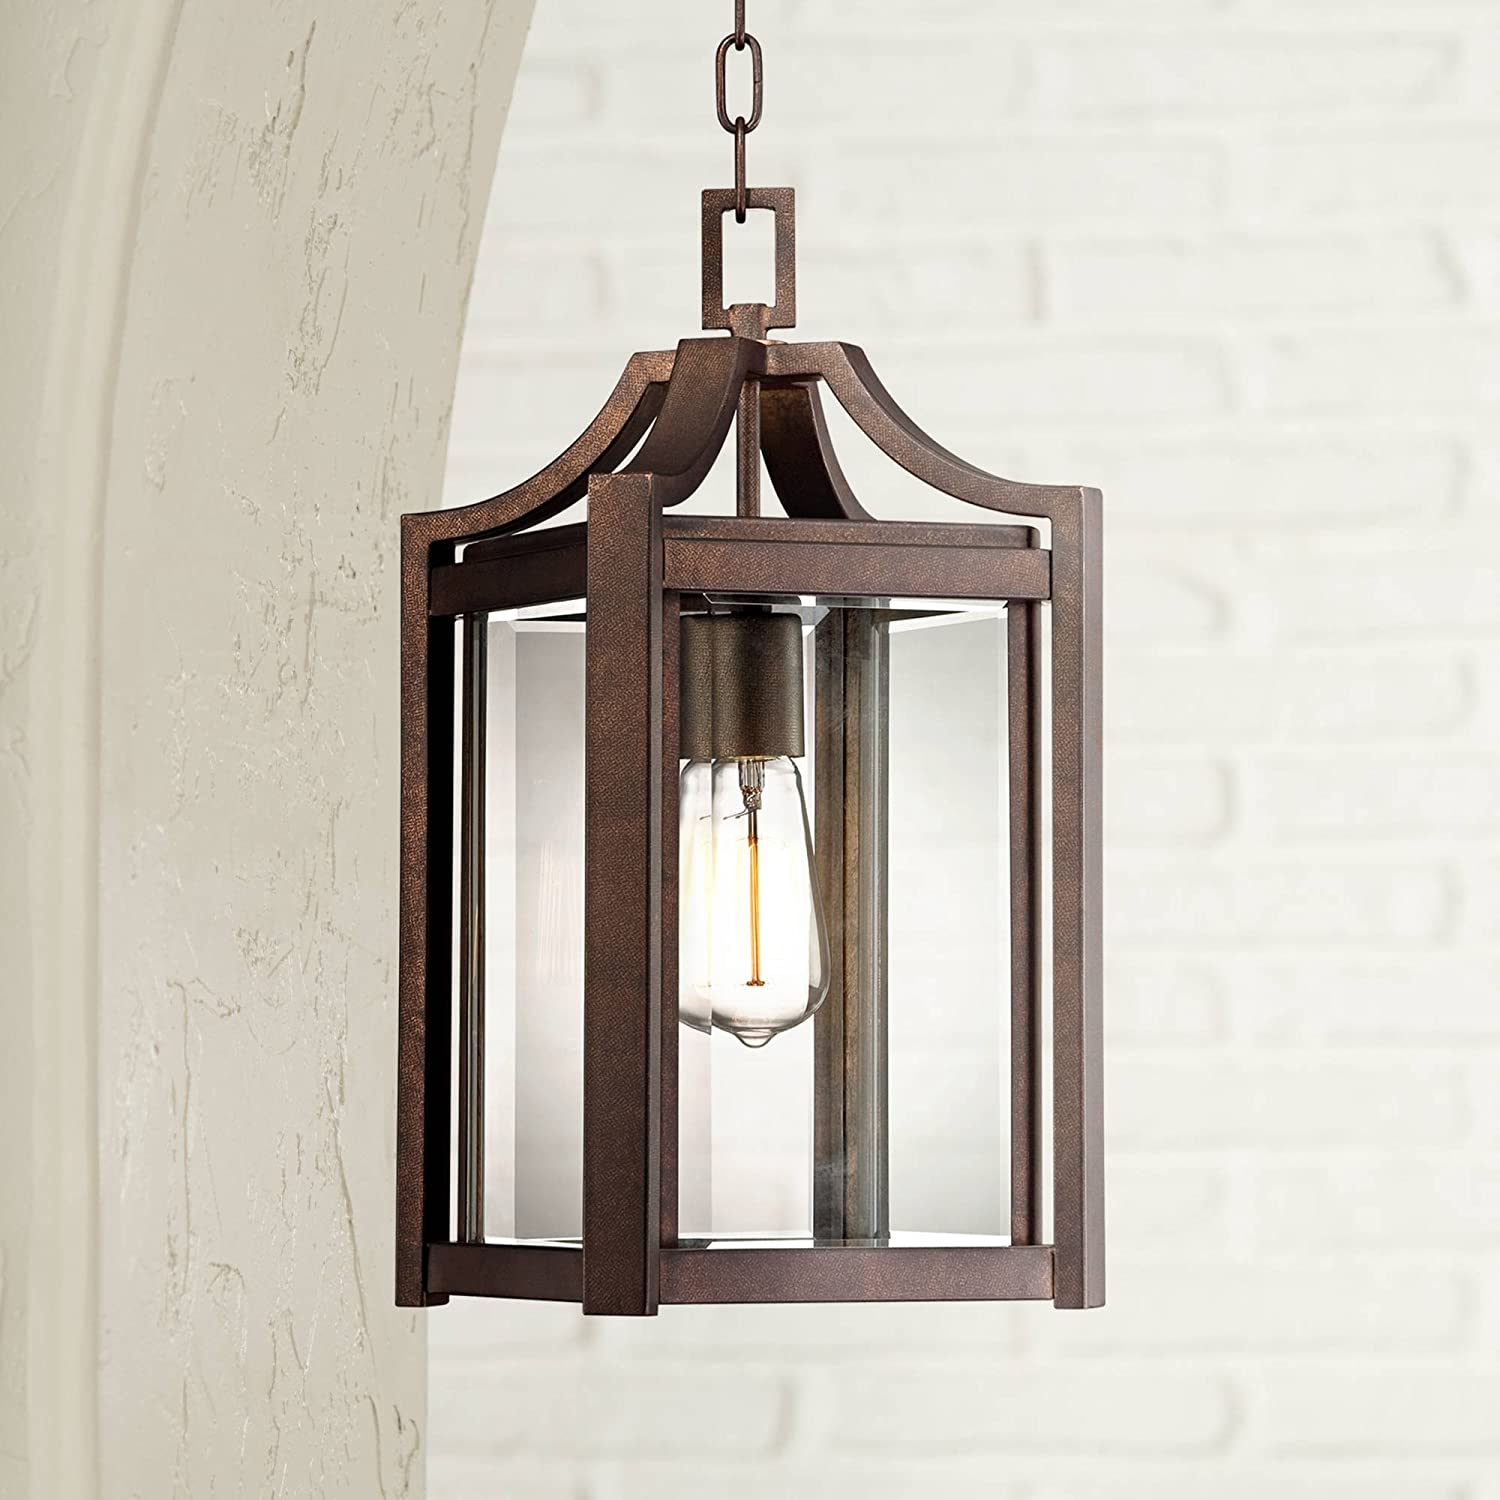 Rockford Modern Farmhouse Rustic Outdoor Ceiling Light Hanging Rustic Bronze 17 Clear Glass Damp Rated For Exterior House Porch Patio Outside Deck Garage Front Door Home Roof Franklin Iron Works